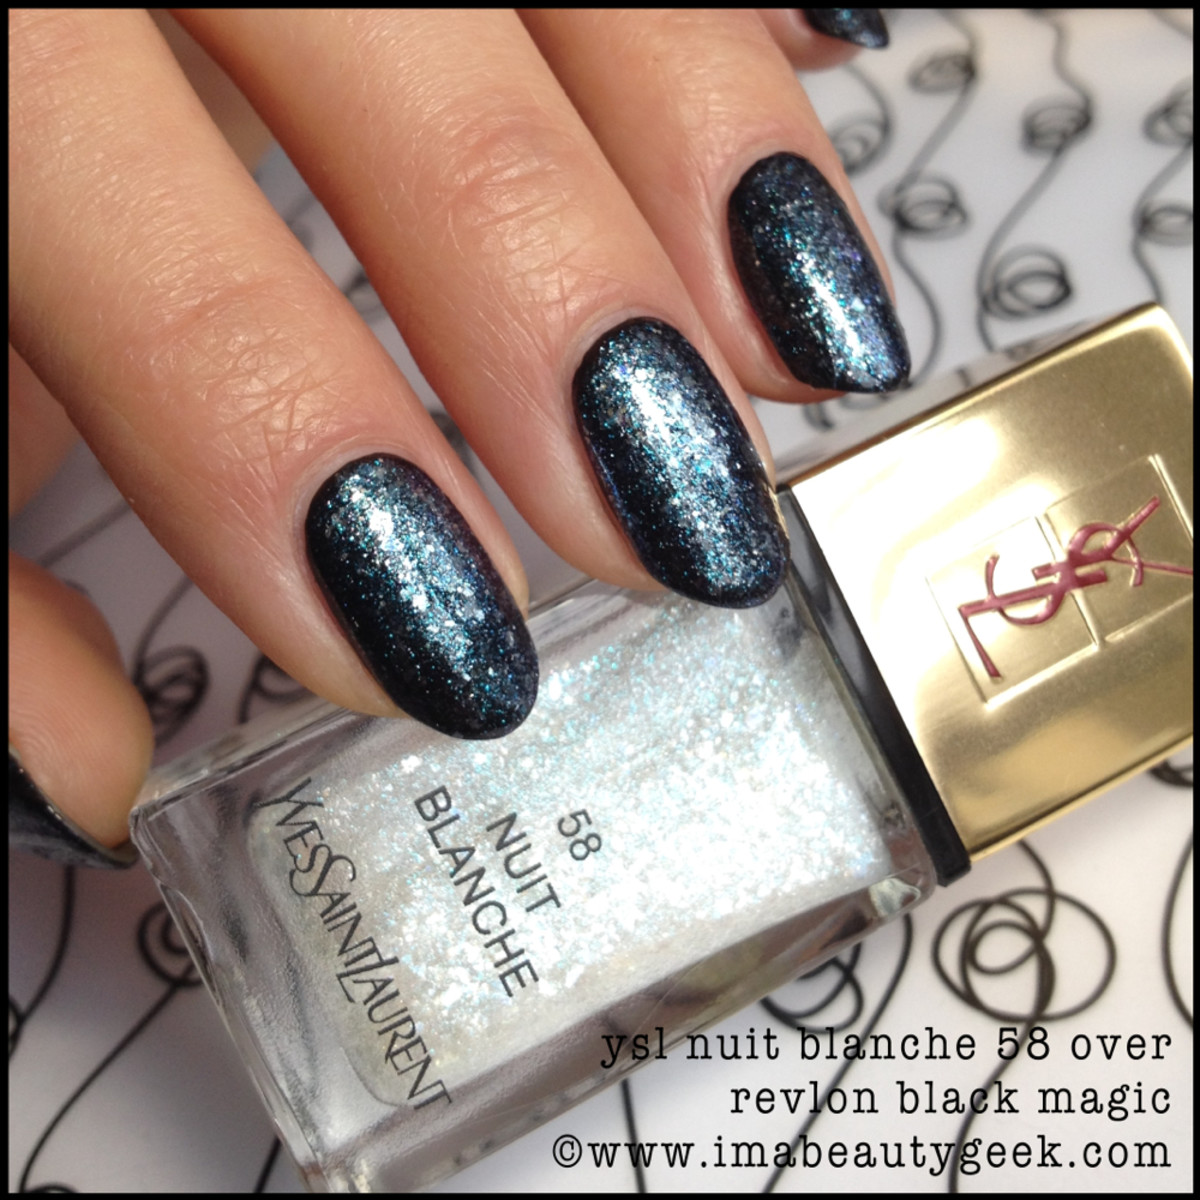 YSL Nuit Blanche 58 Vernis